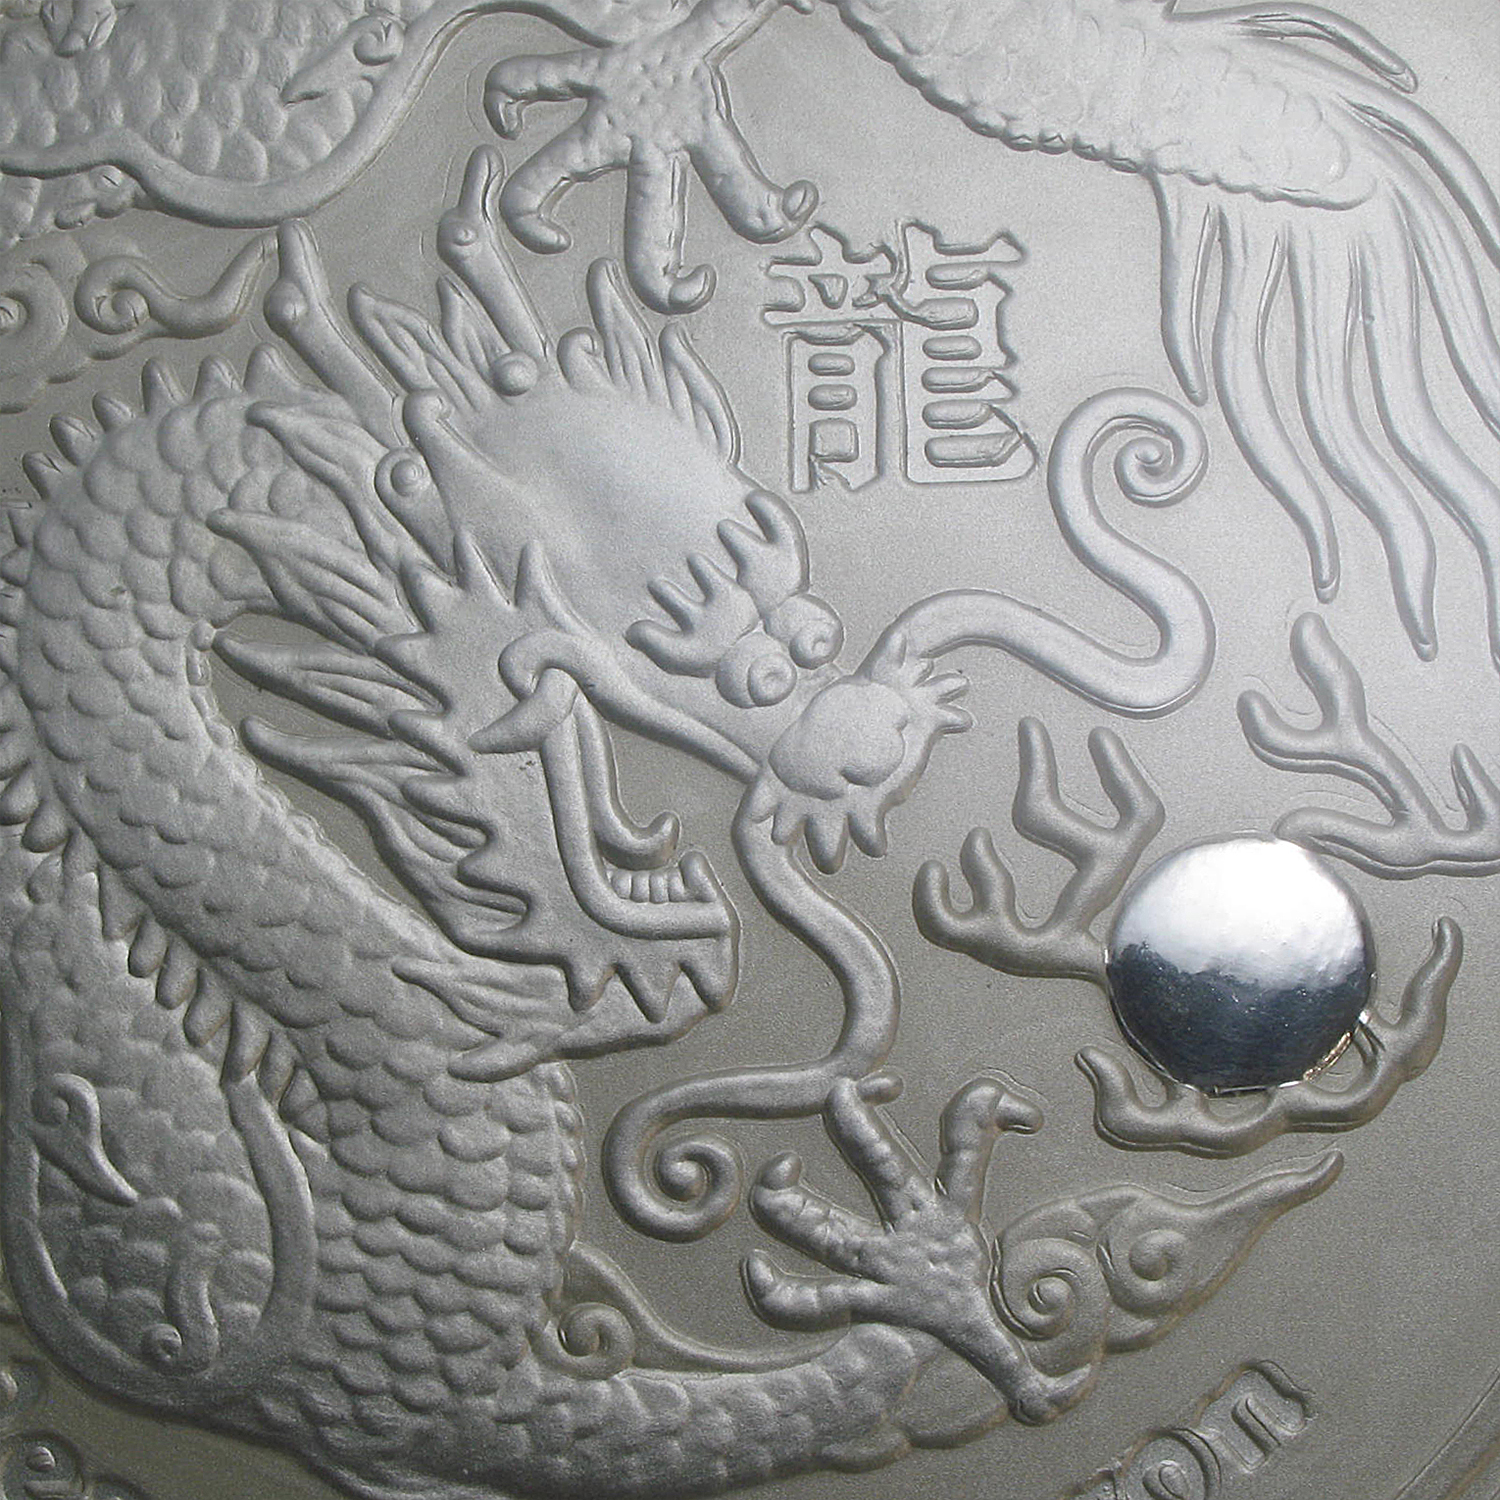 2012 10 Kilo (321.5 oz) Silver Australian Year of the Dragon